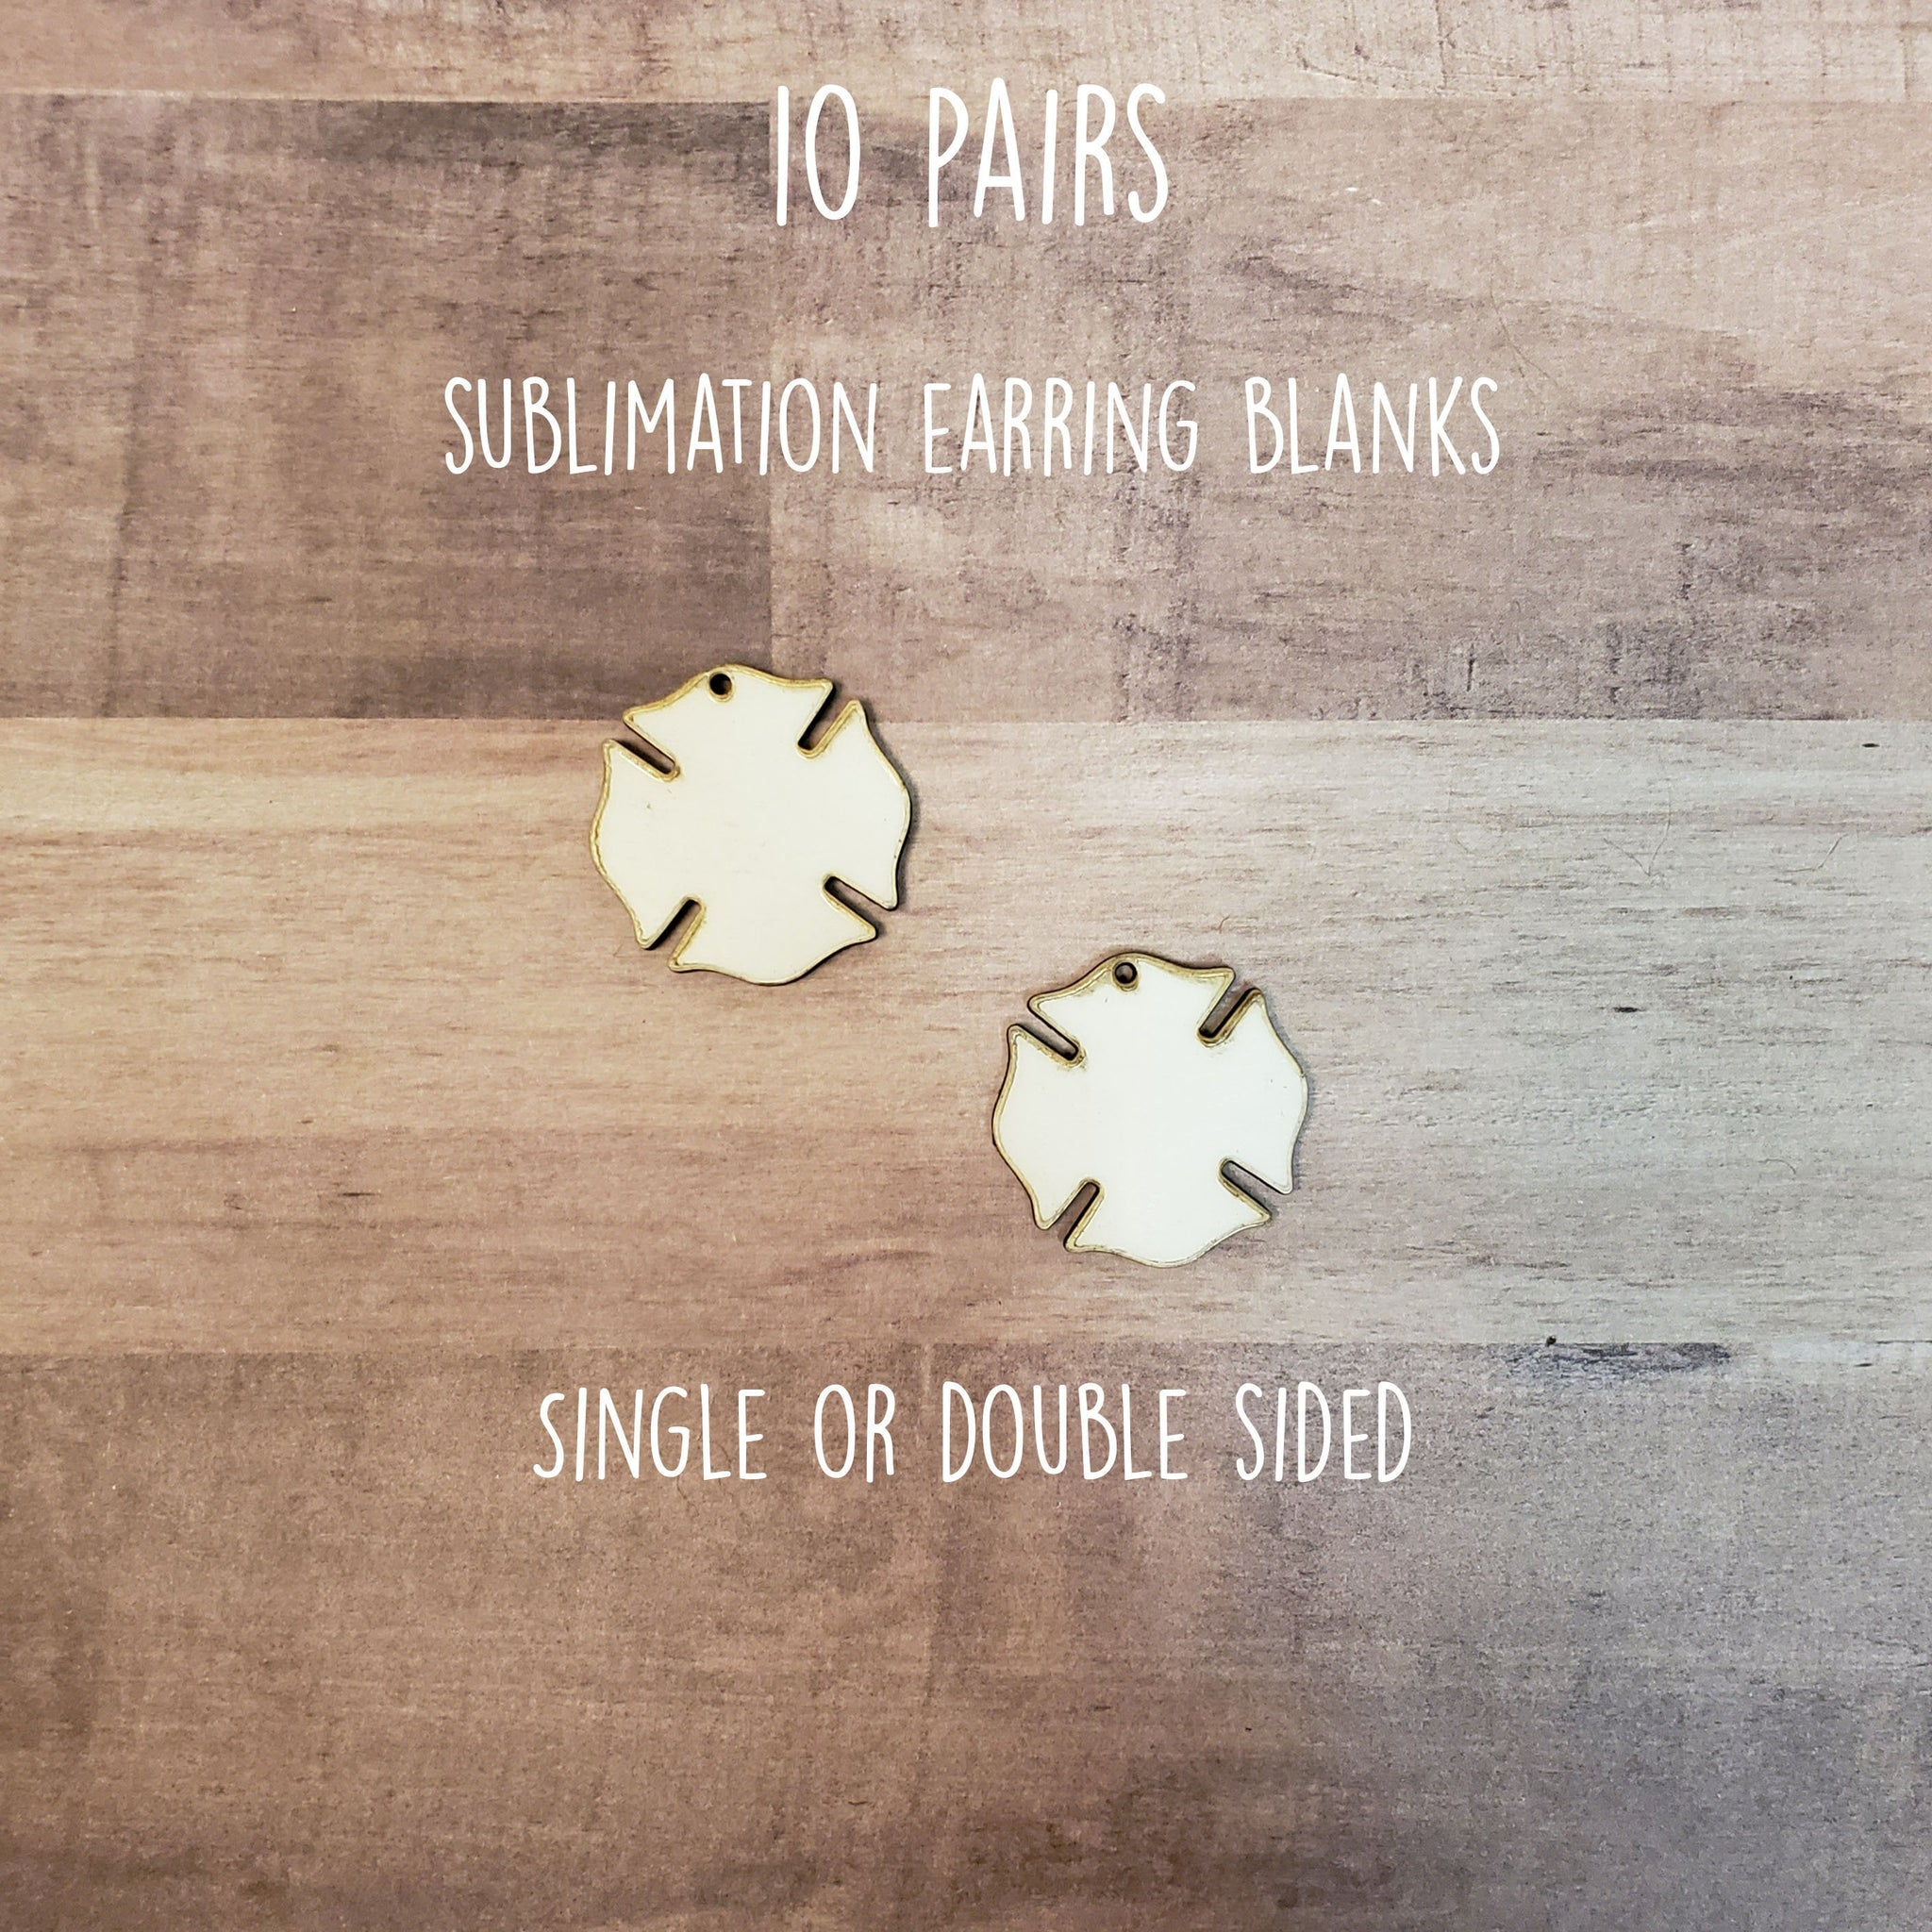 "Sublimation hardboard blanks, 1.25""  Maltese cross shaped sublimation blanks, SINGLE or DOUBLE-sided maltese earring blanks for sublimation"